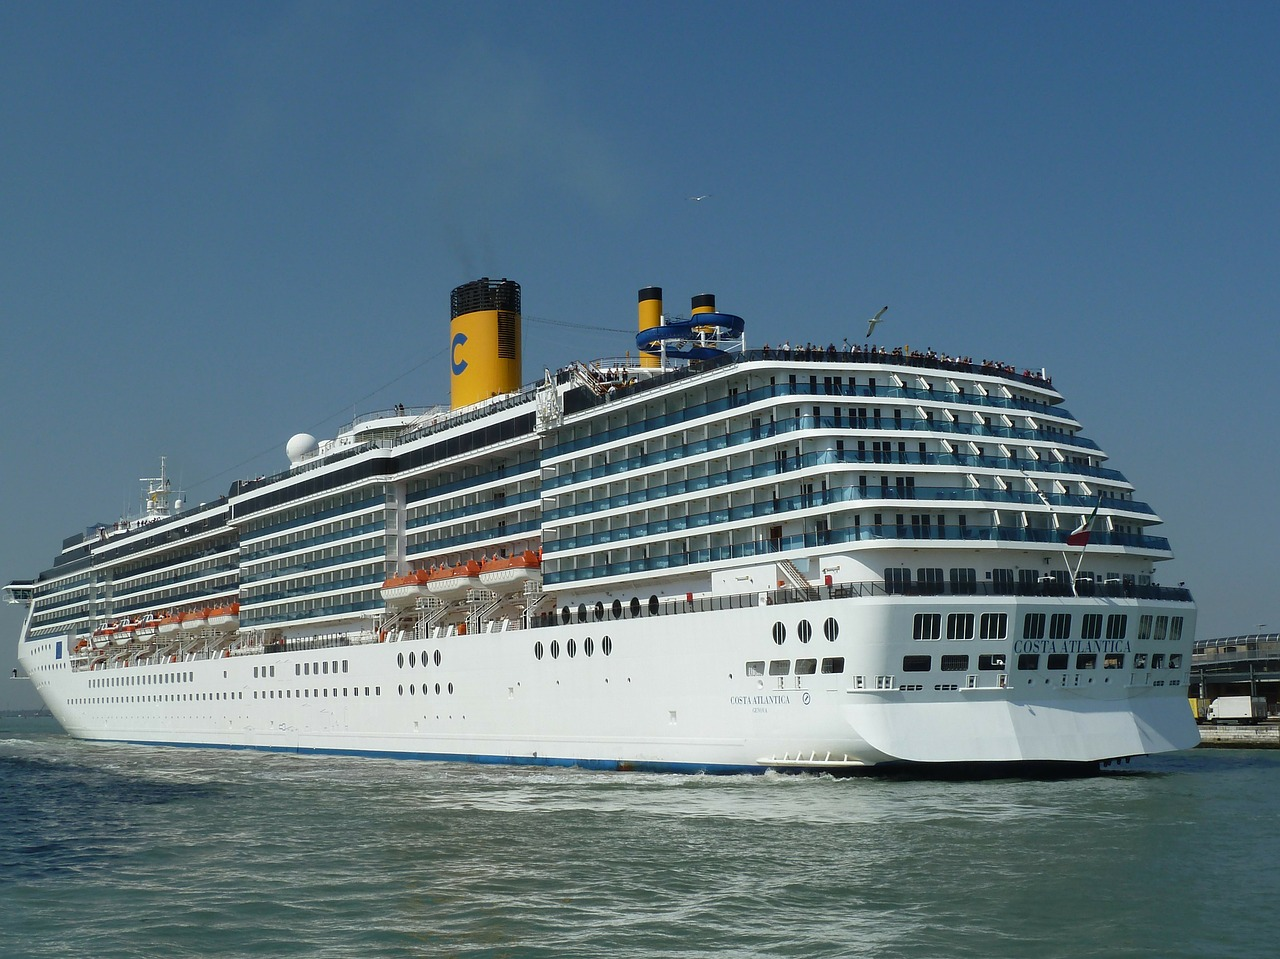 cruise ship mediterranean sea free photo